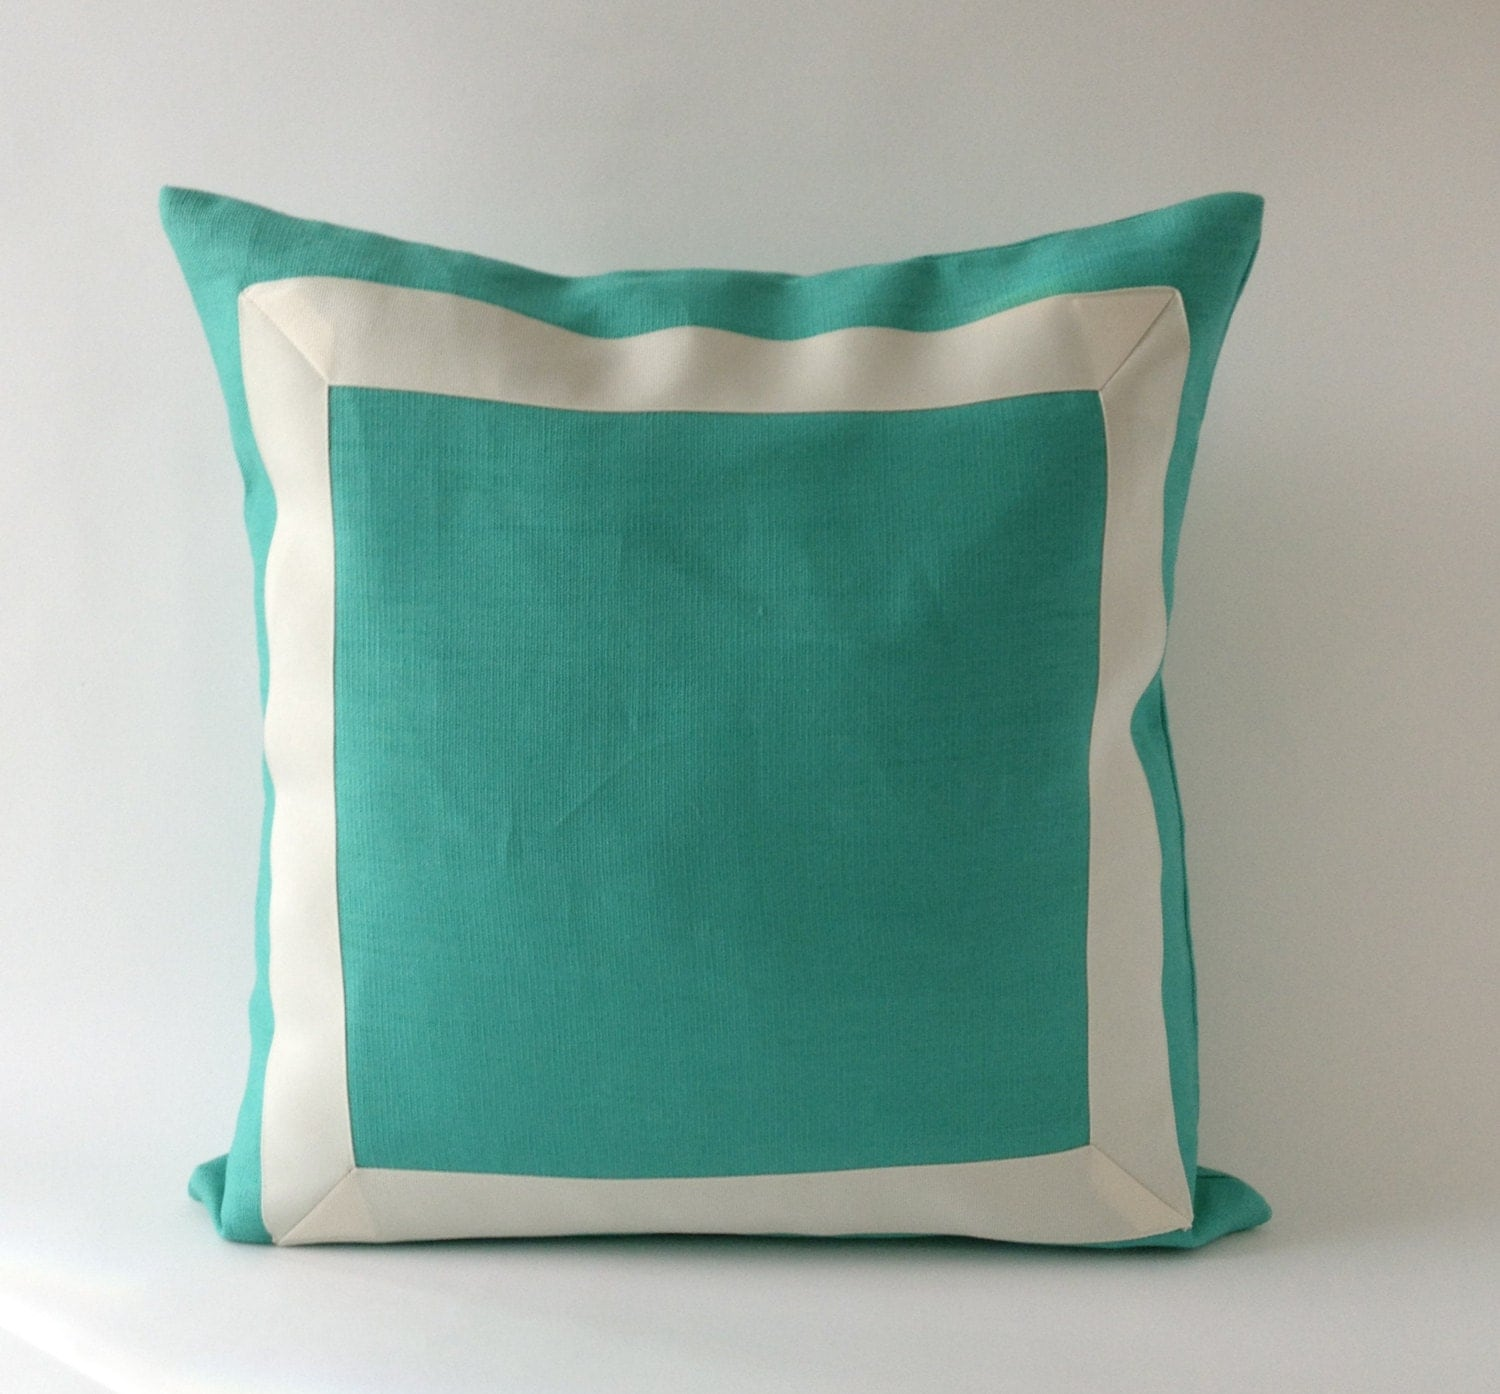 Throw Pillows In Mint Green : Decorative Throw Pillow Cover Mint Green Linen Pillow Cover